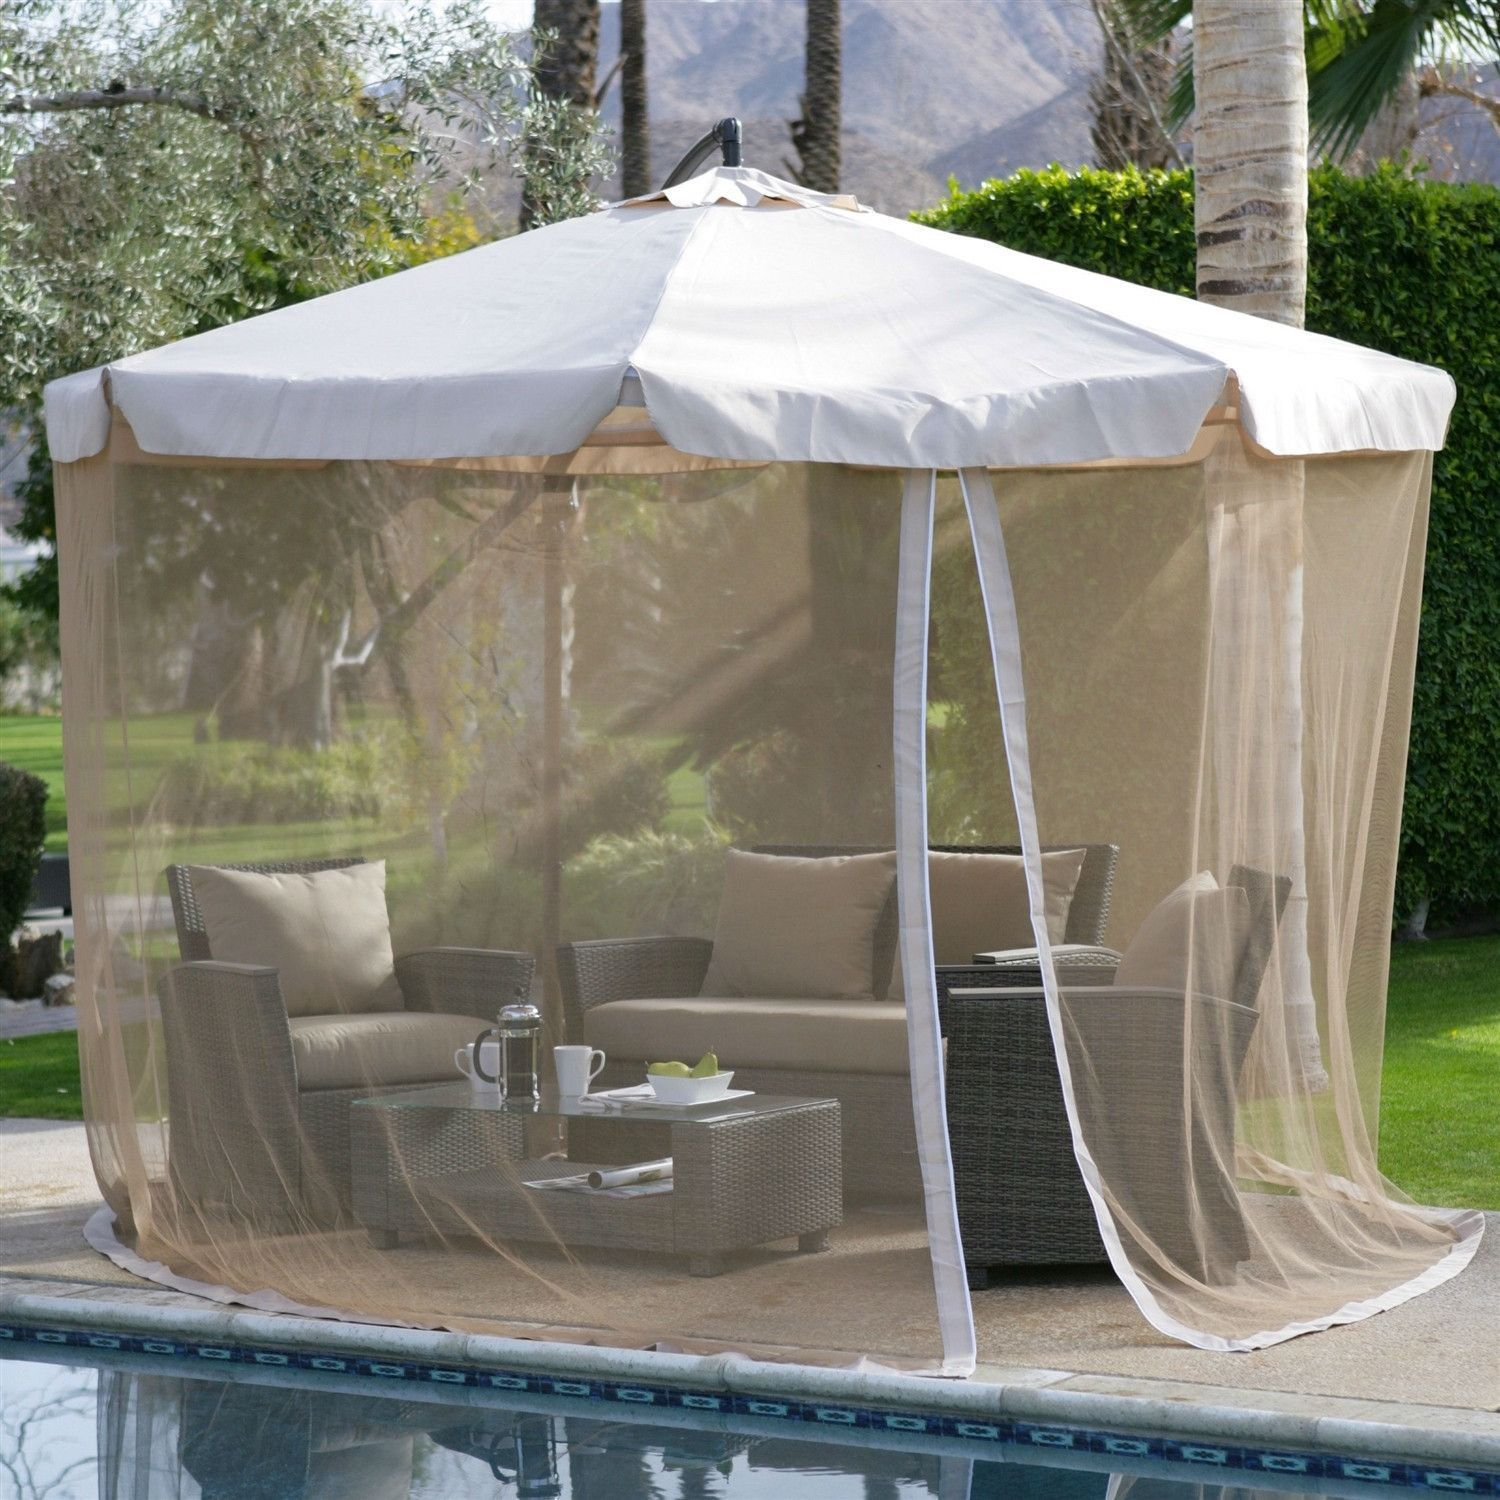 Modern 11 Ft Cantilever fset Patio Umbrella in Tan with